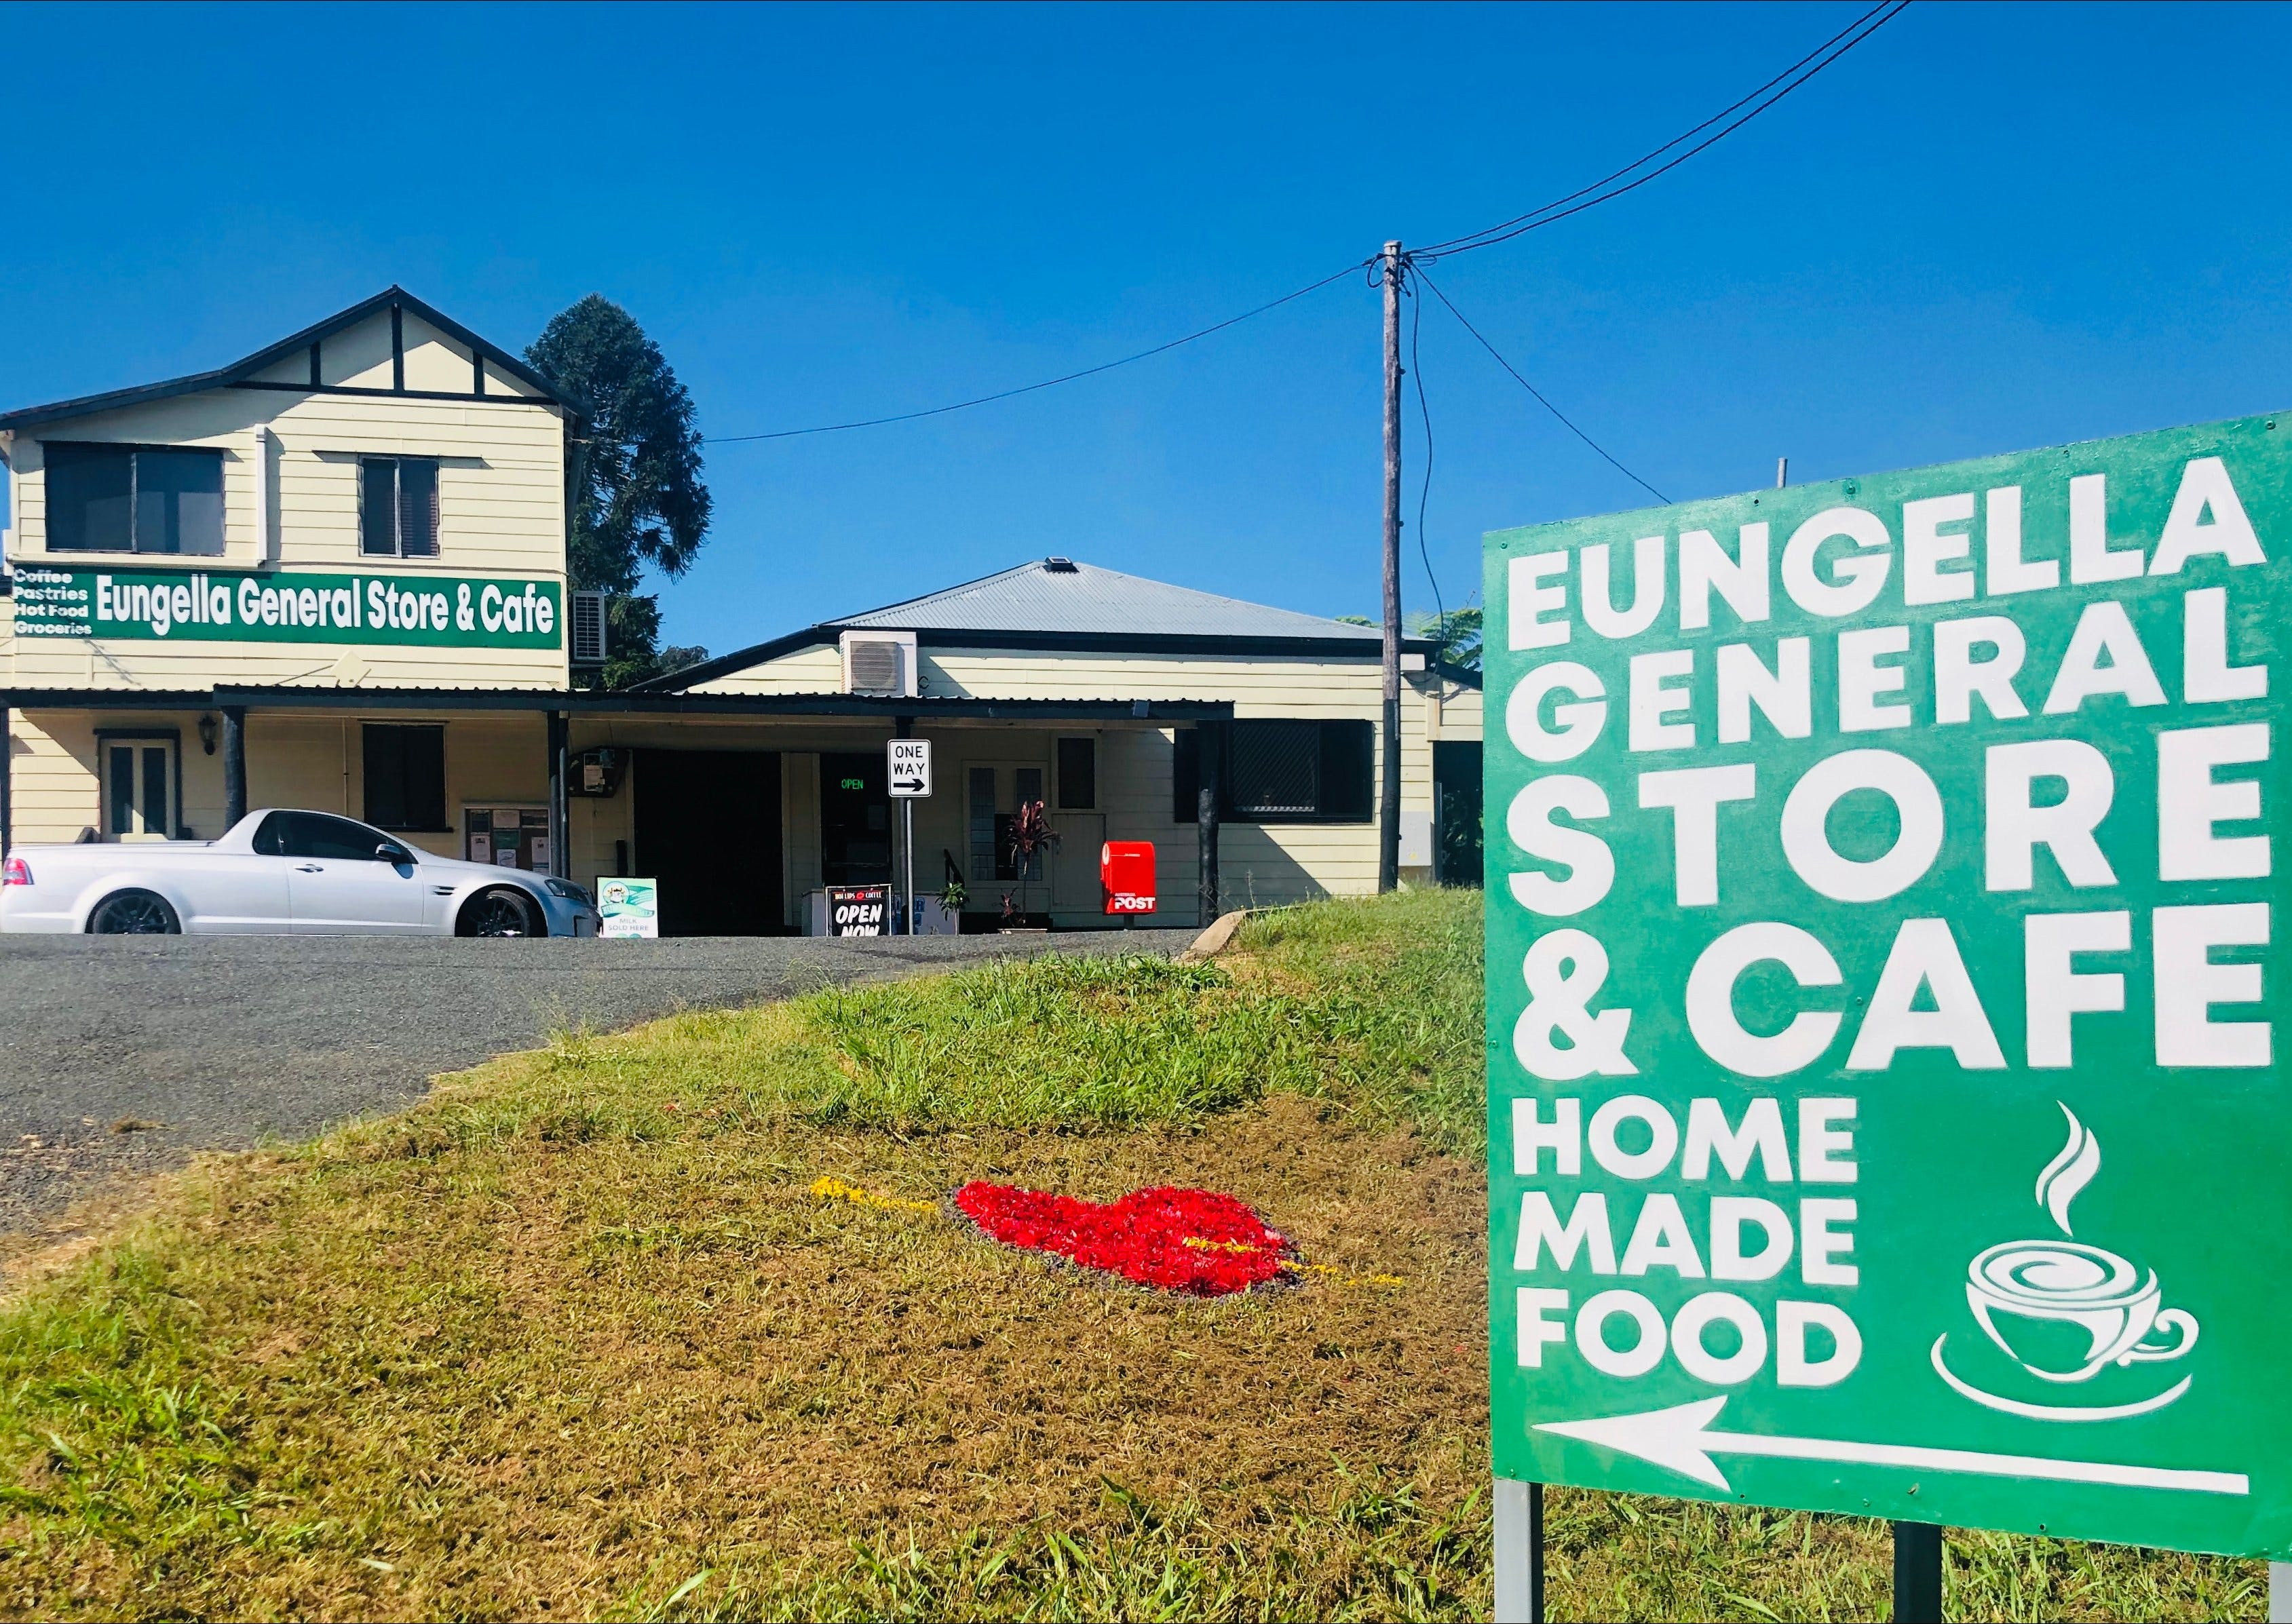 Eungella General Store and Cafe - Pubs Sydney